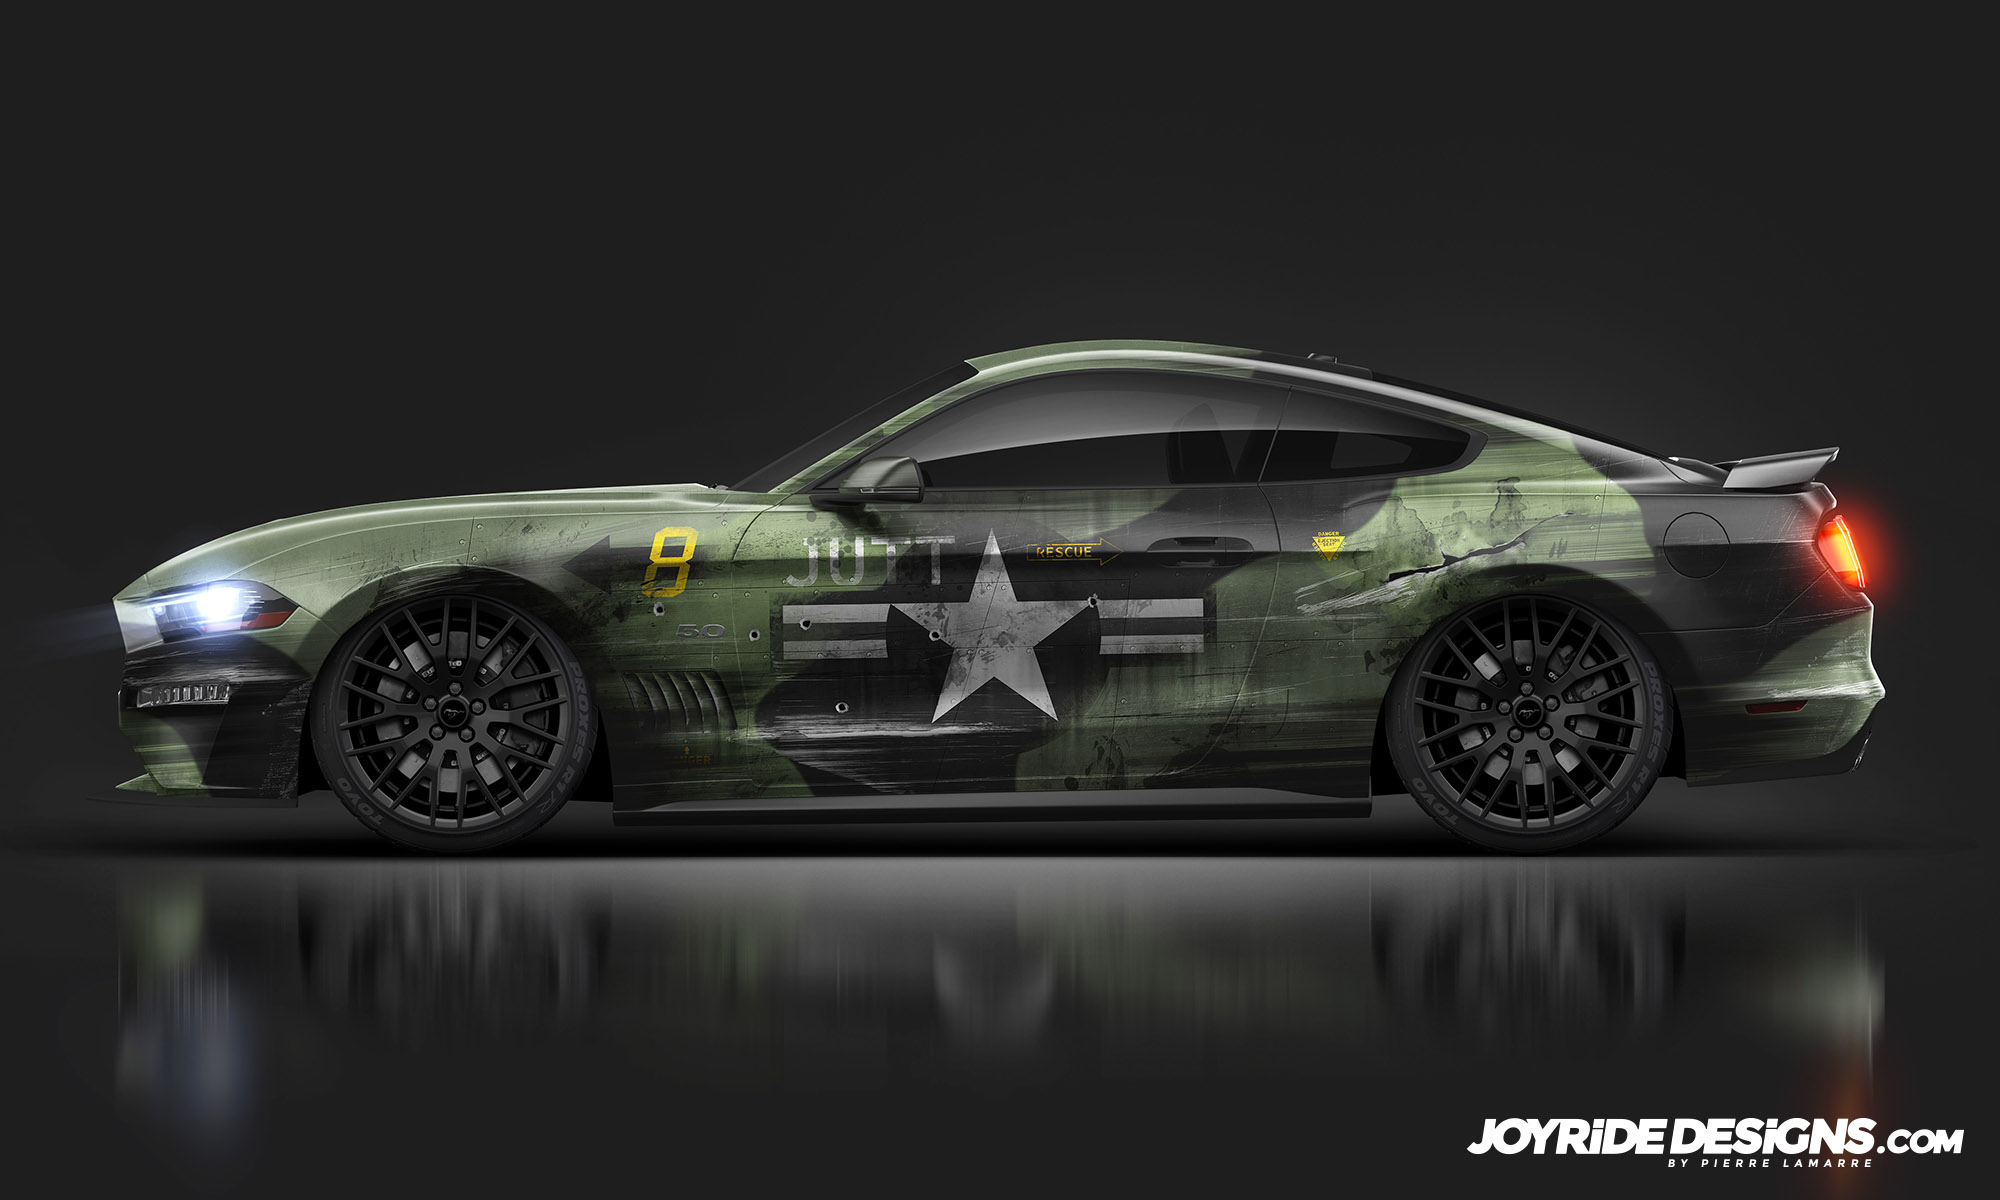 FORD MUSTANG GT MILITARY JOYRIDE WRAP DESIGN SIDE VIEW